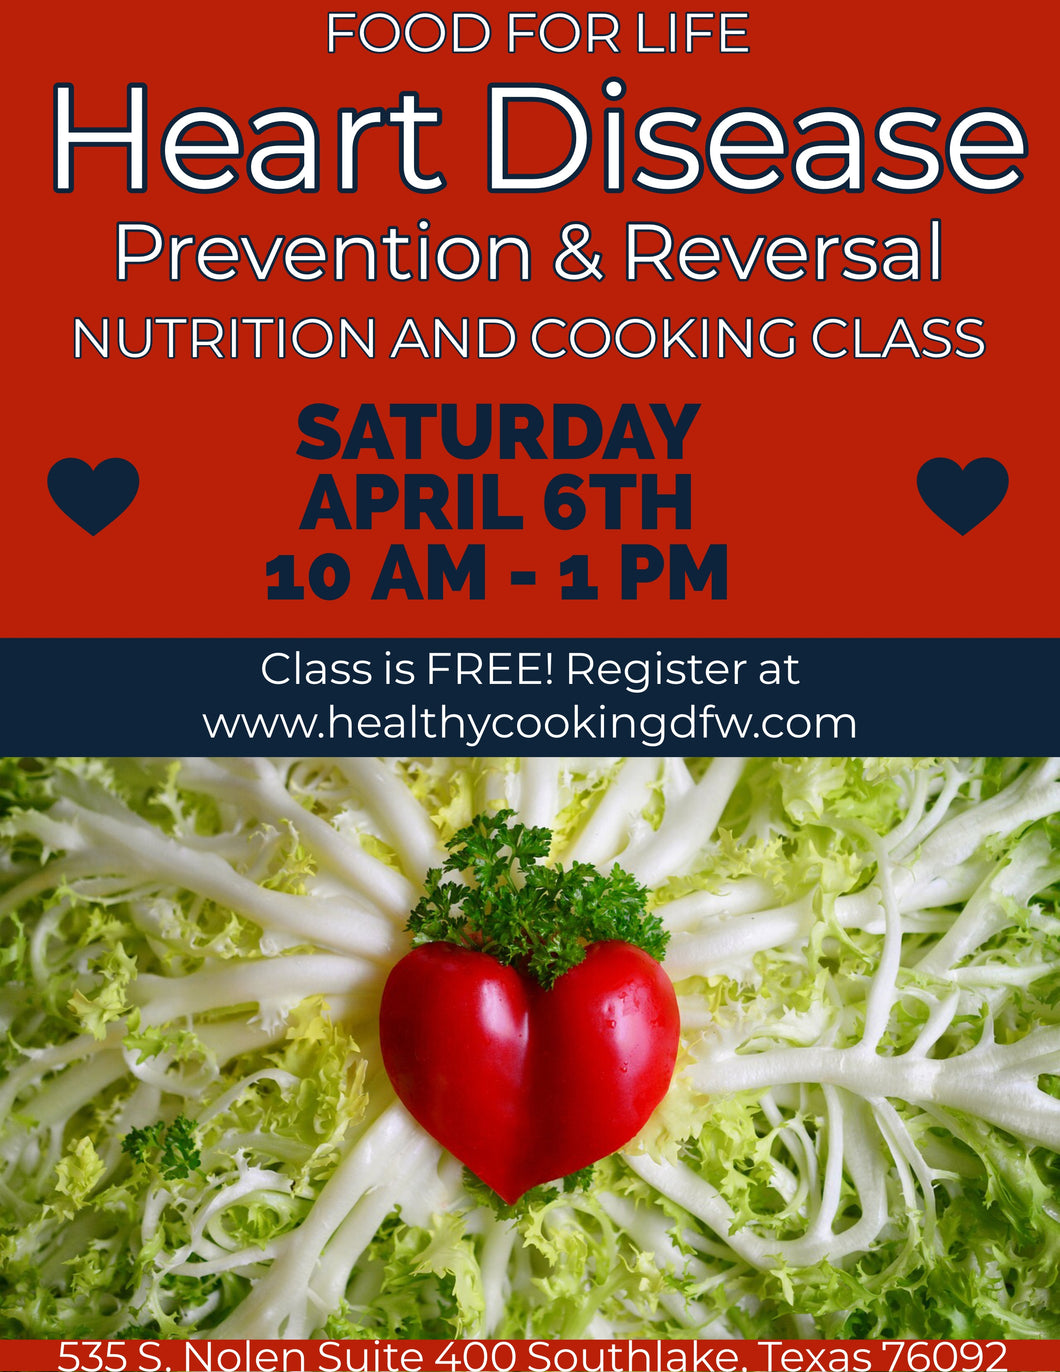 Heart Disease Prevention - SOUTHLAKE - Apr 6 10am-12pm